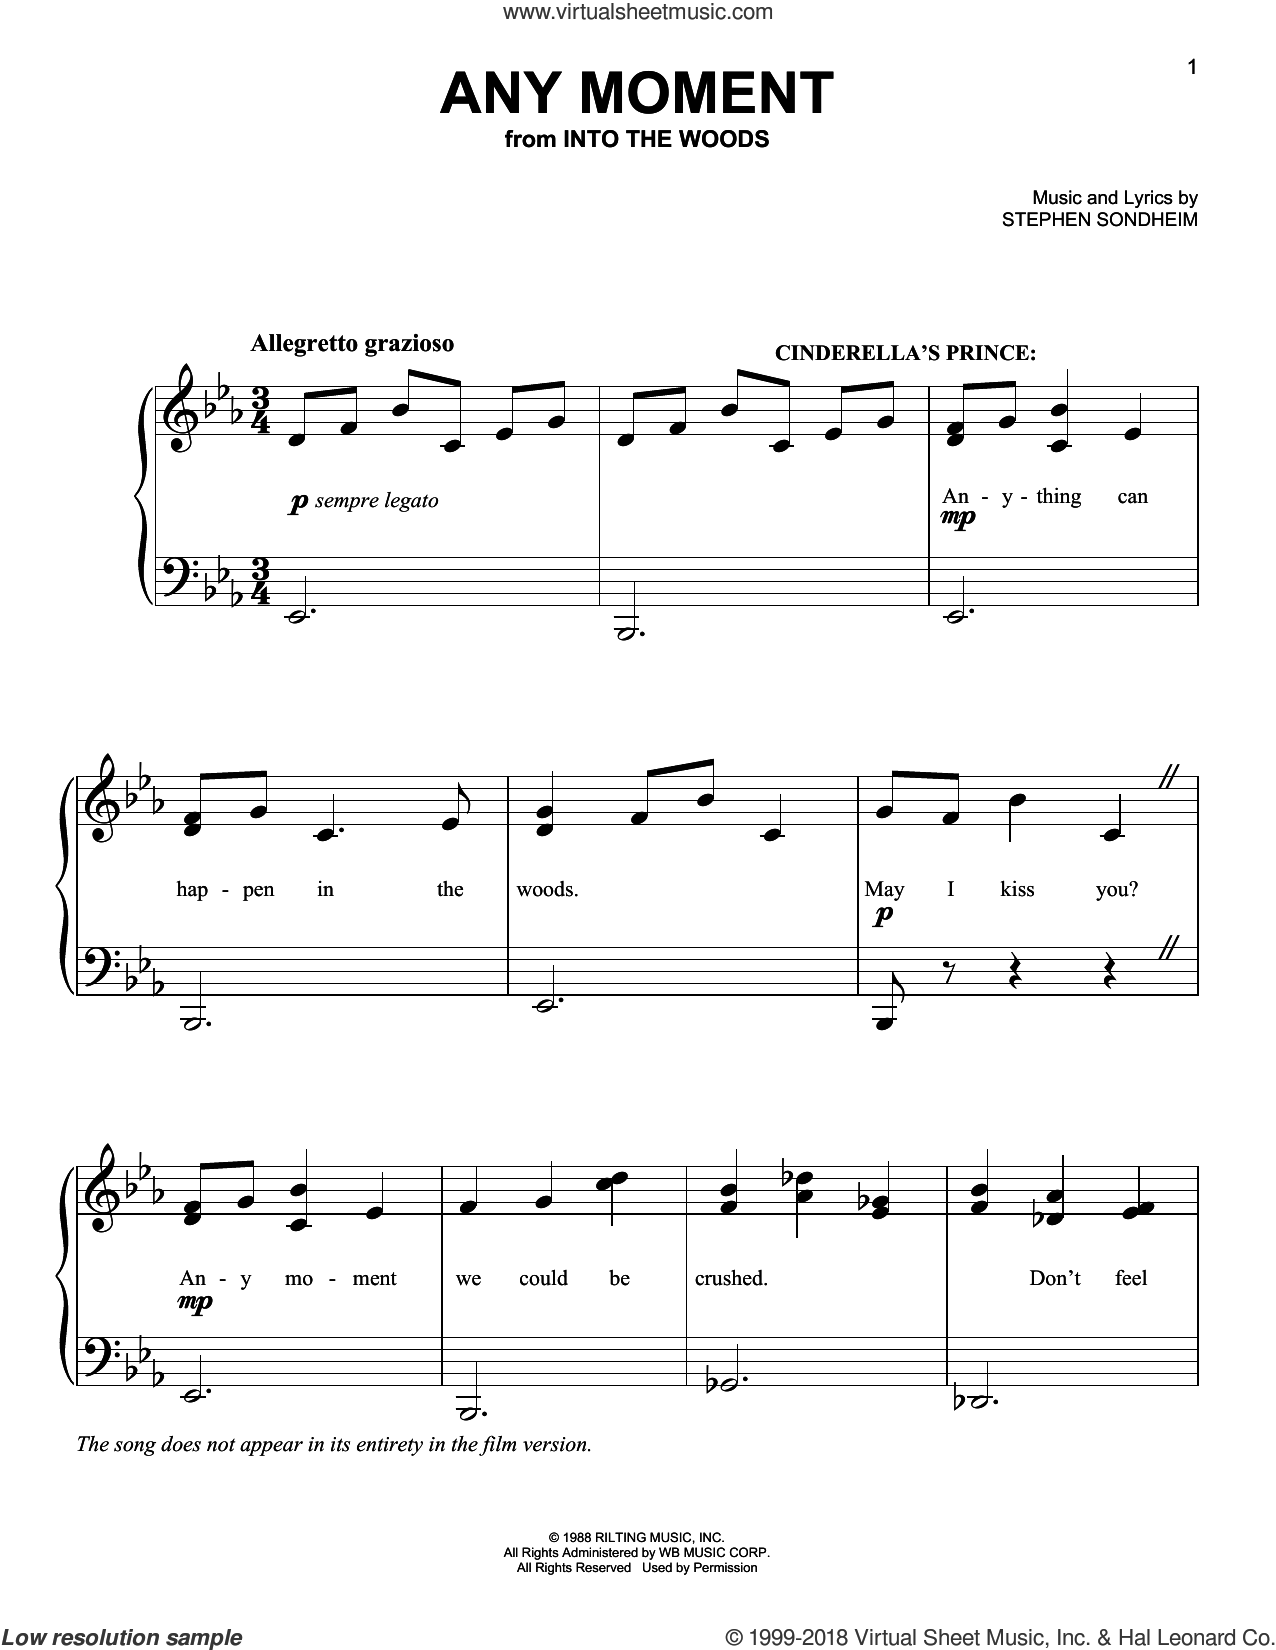 Any Moment - Part I (from Into The Woods) sheet music for piano solo by Stephen Sondheim, easy skill level